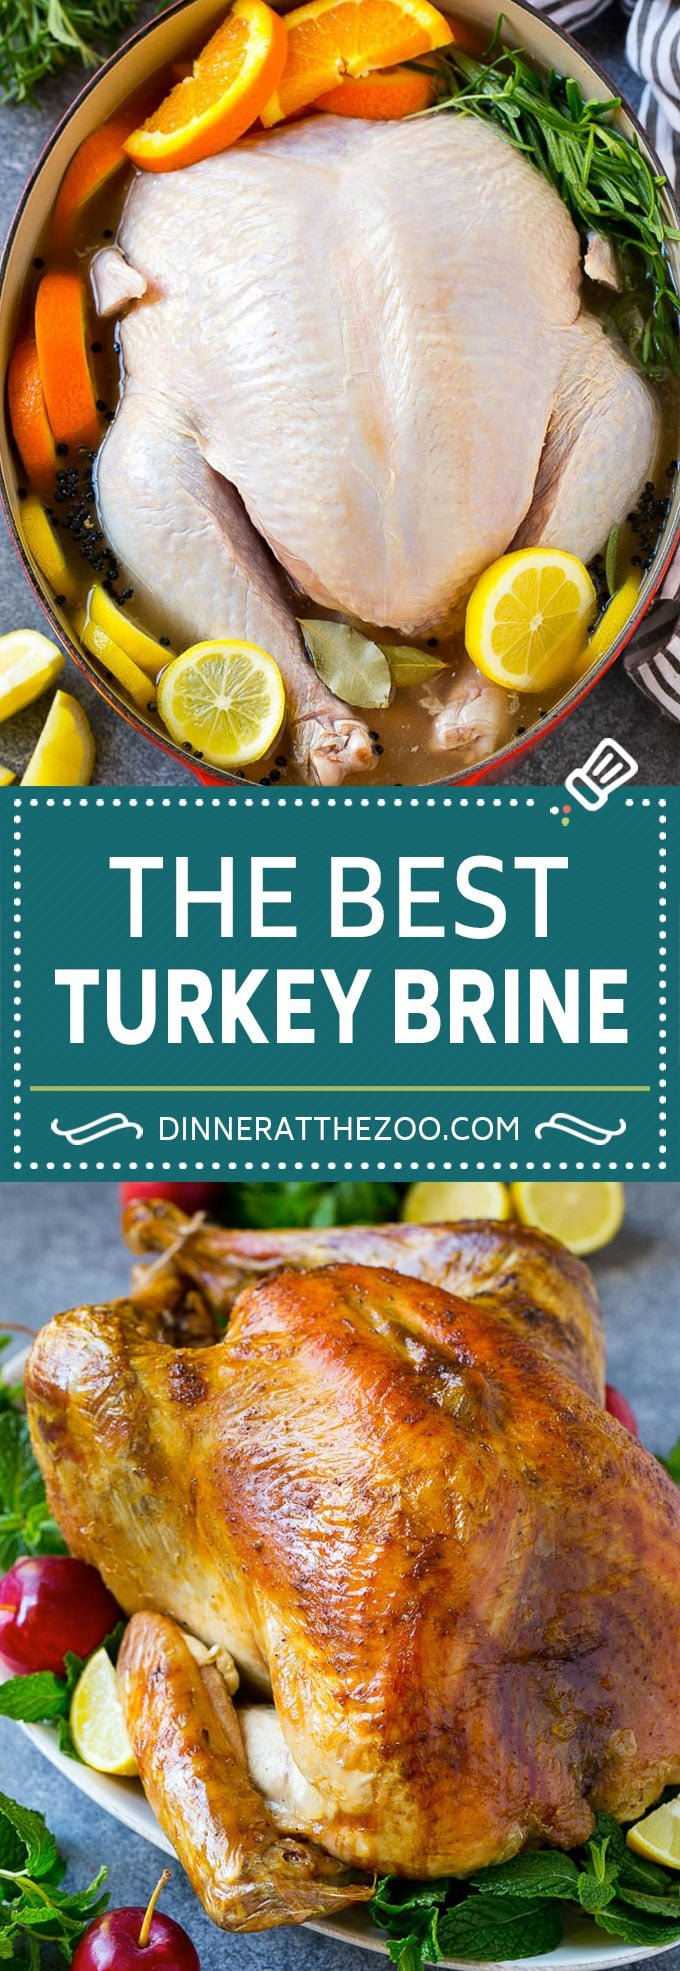 turkey brine recipe dinner at the zoo turkey brine recipe dinner at the zoo